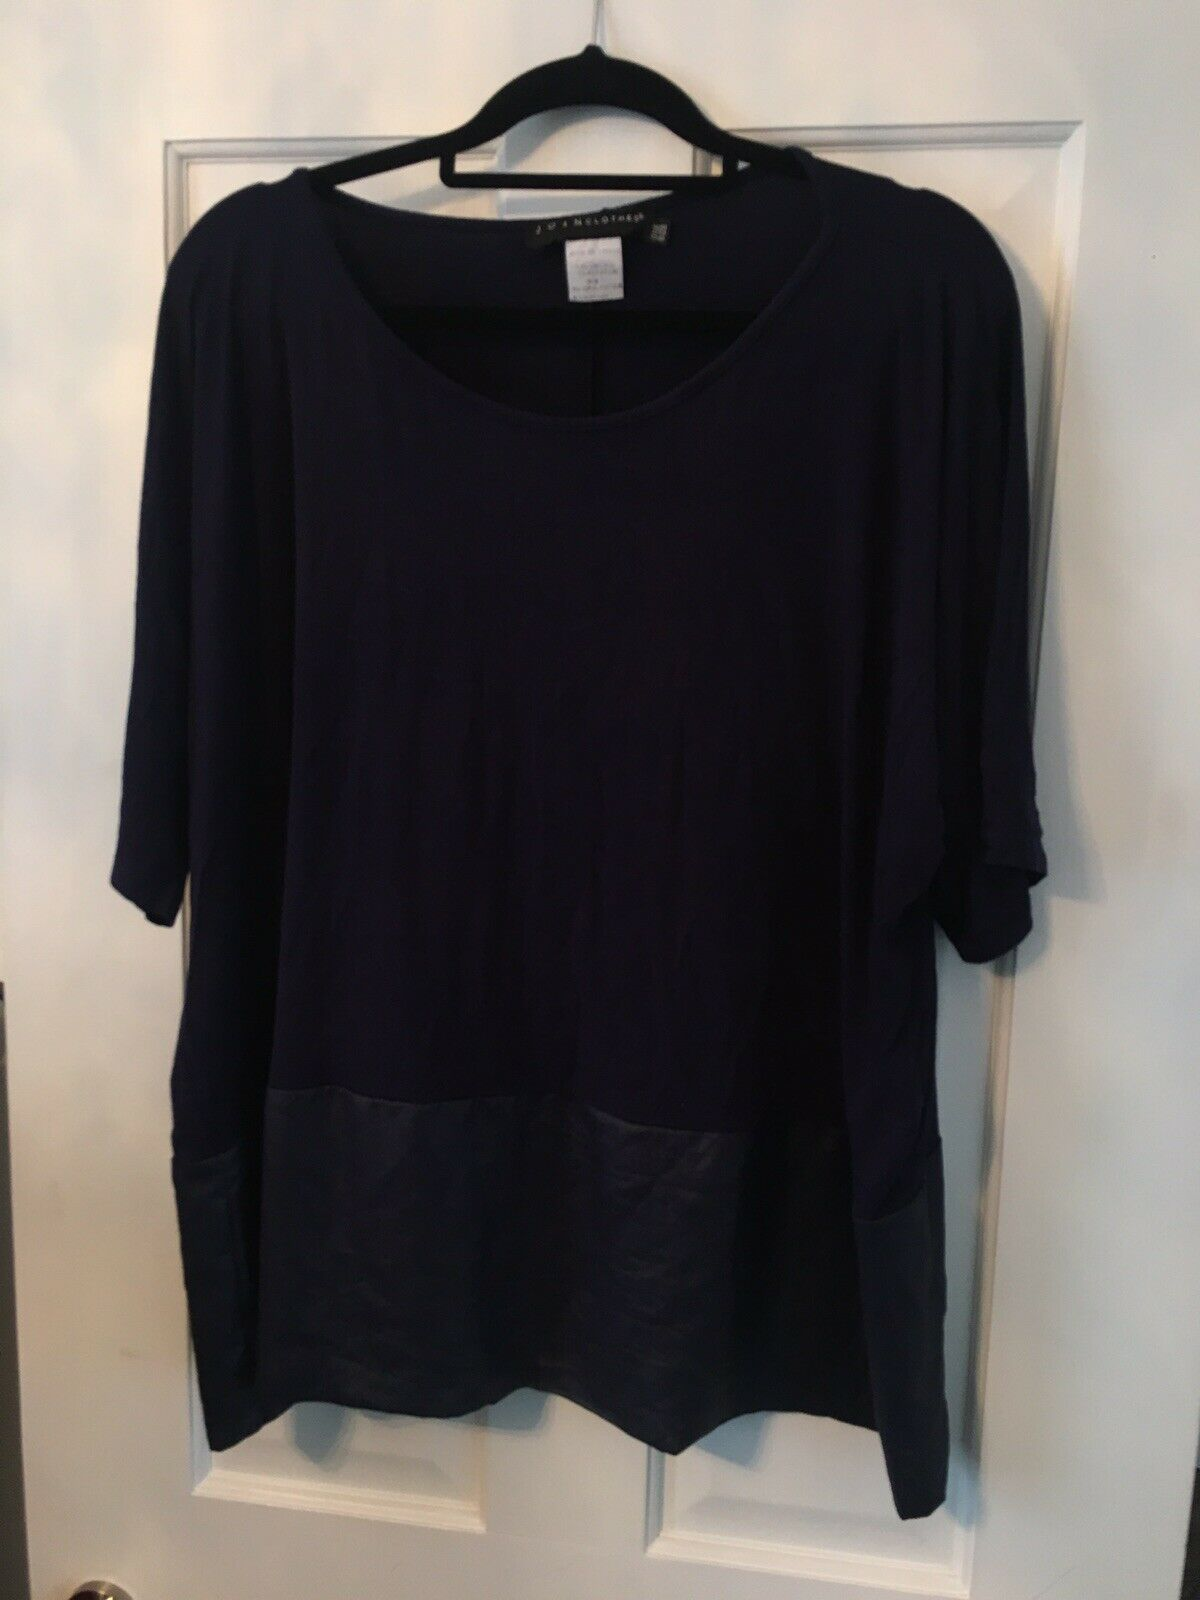 YONG KIM NAVY blueE TOP ONE SIZE